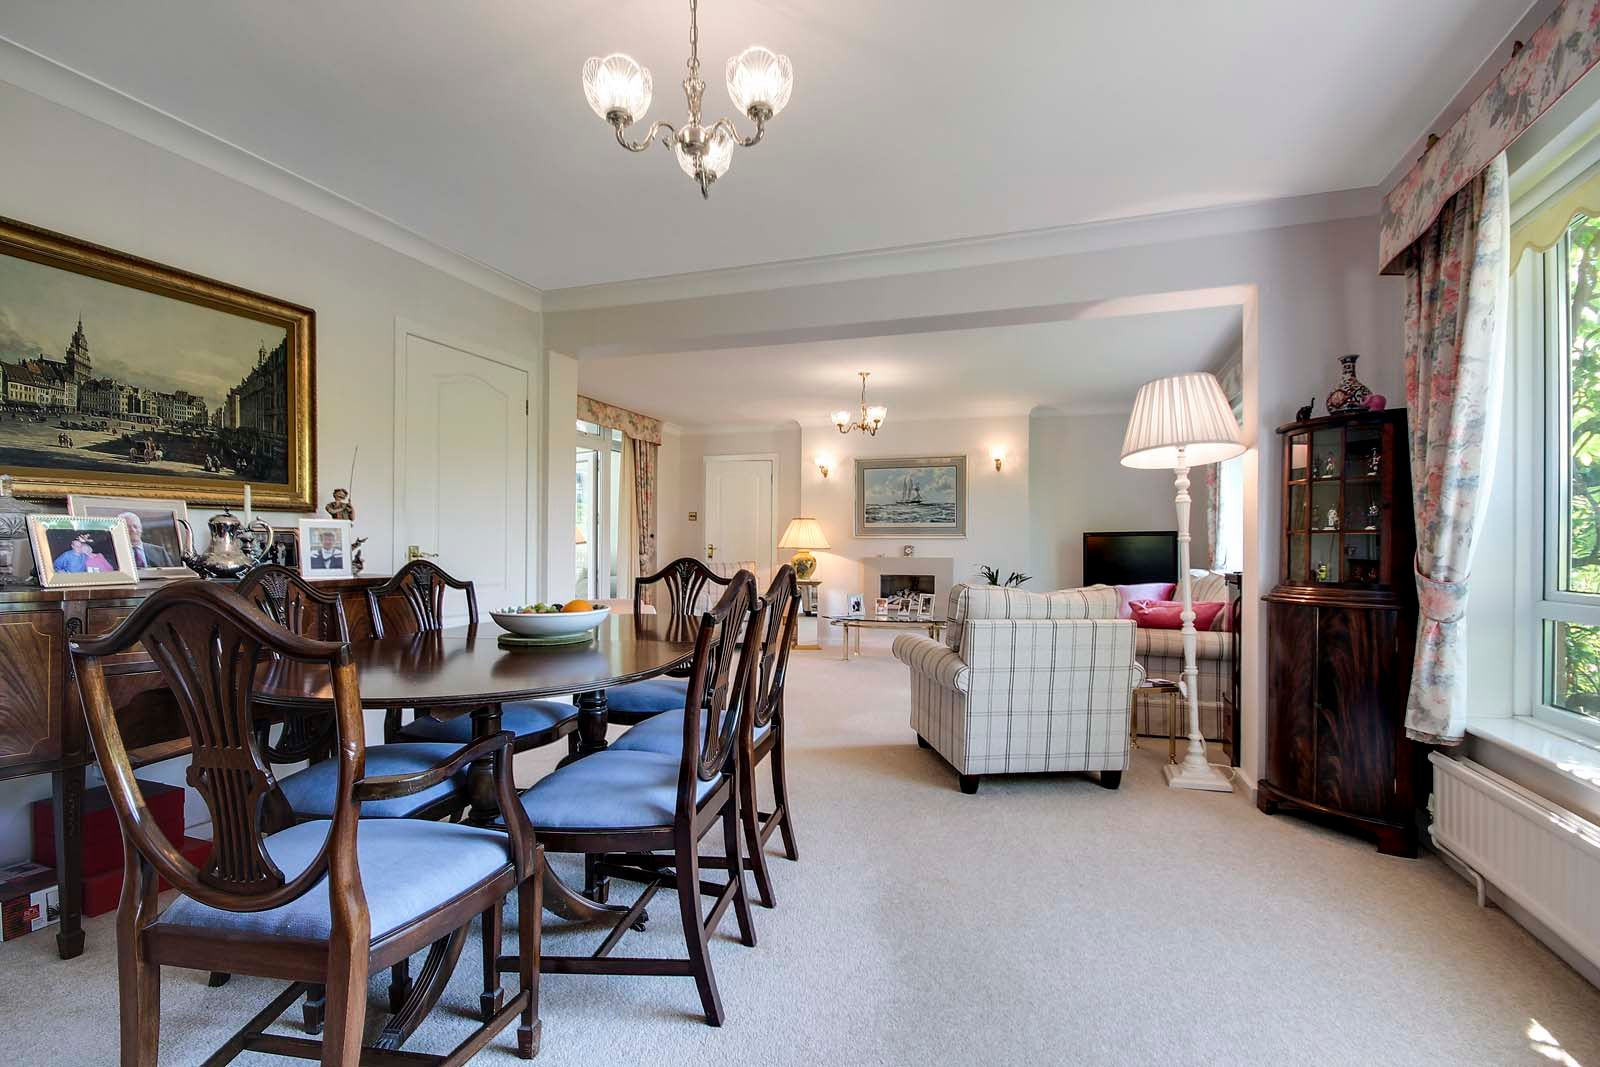 5 bed House for sale in The Willowhayne, East Preston - Dining room (Property Image 14)